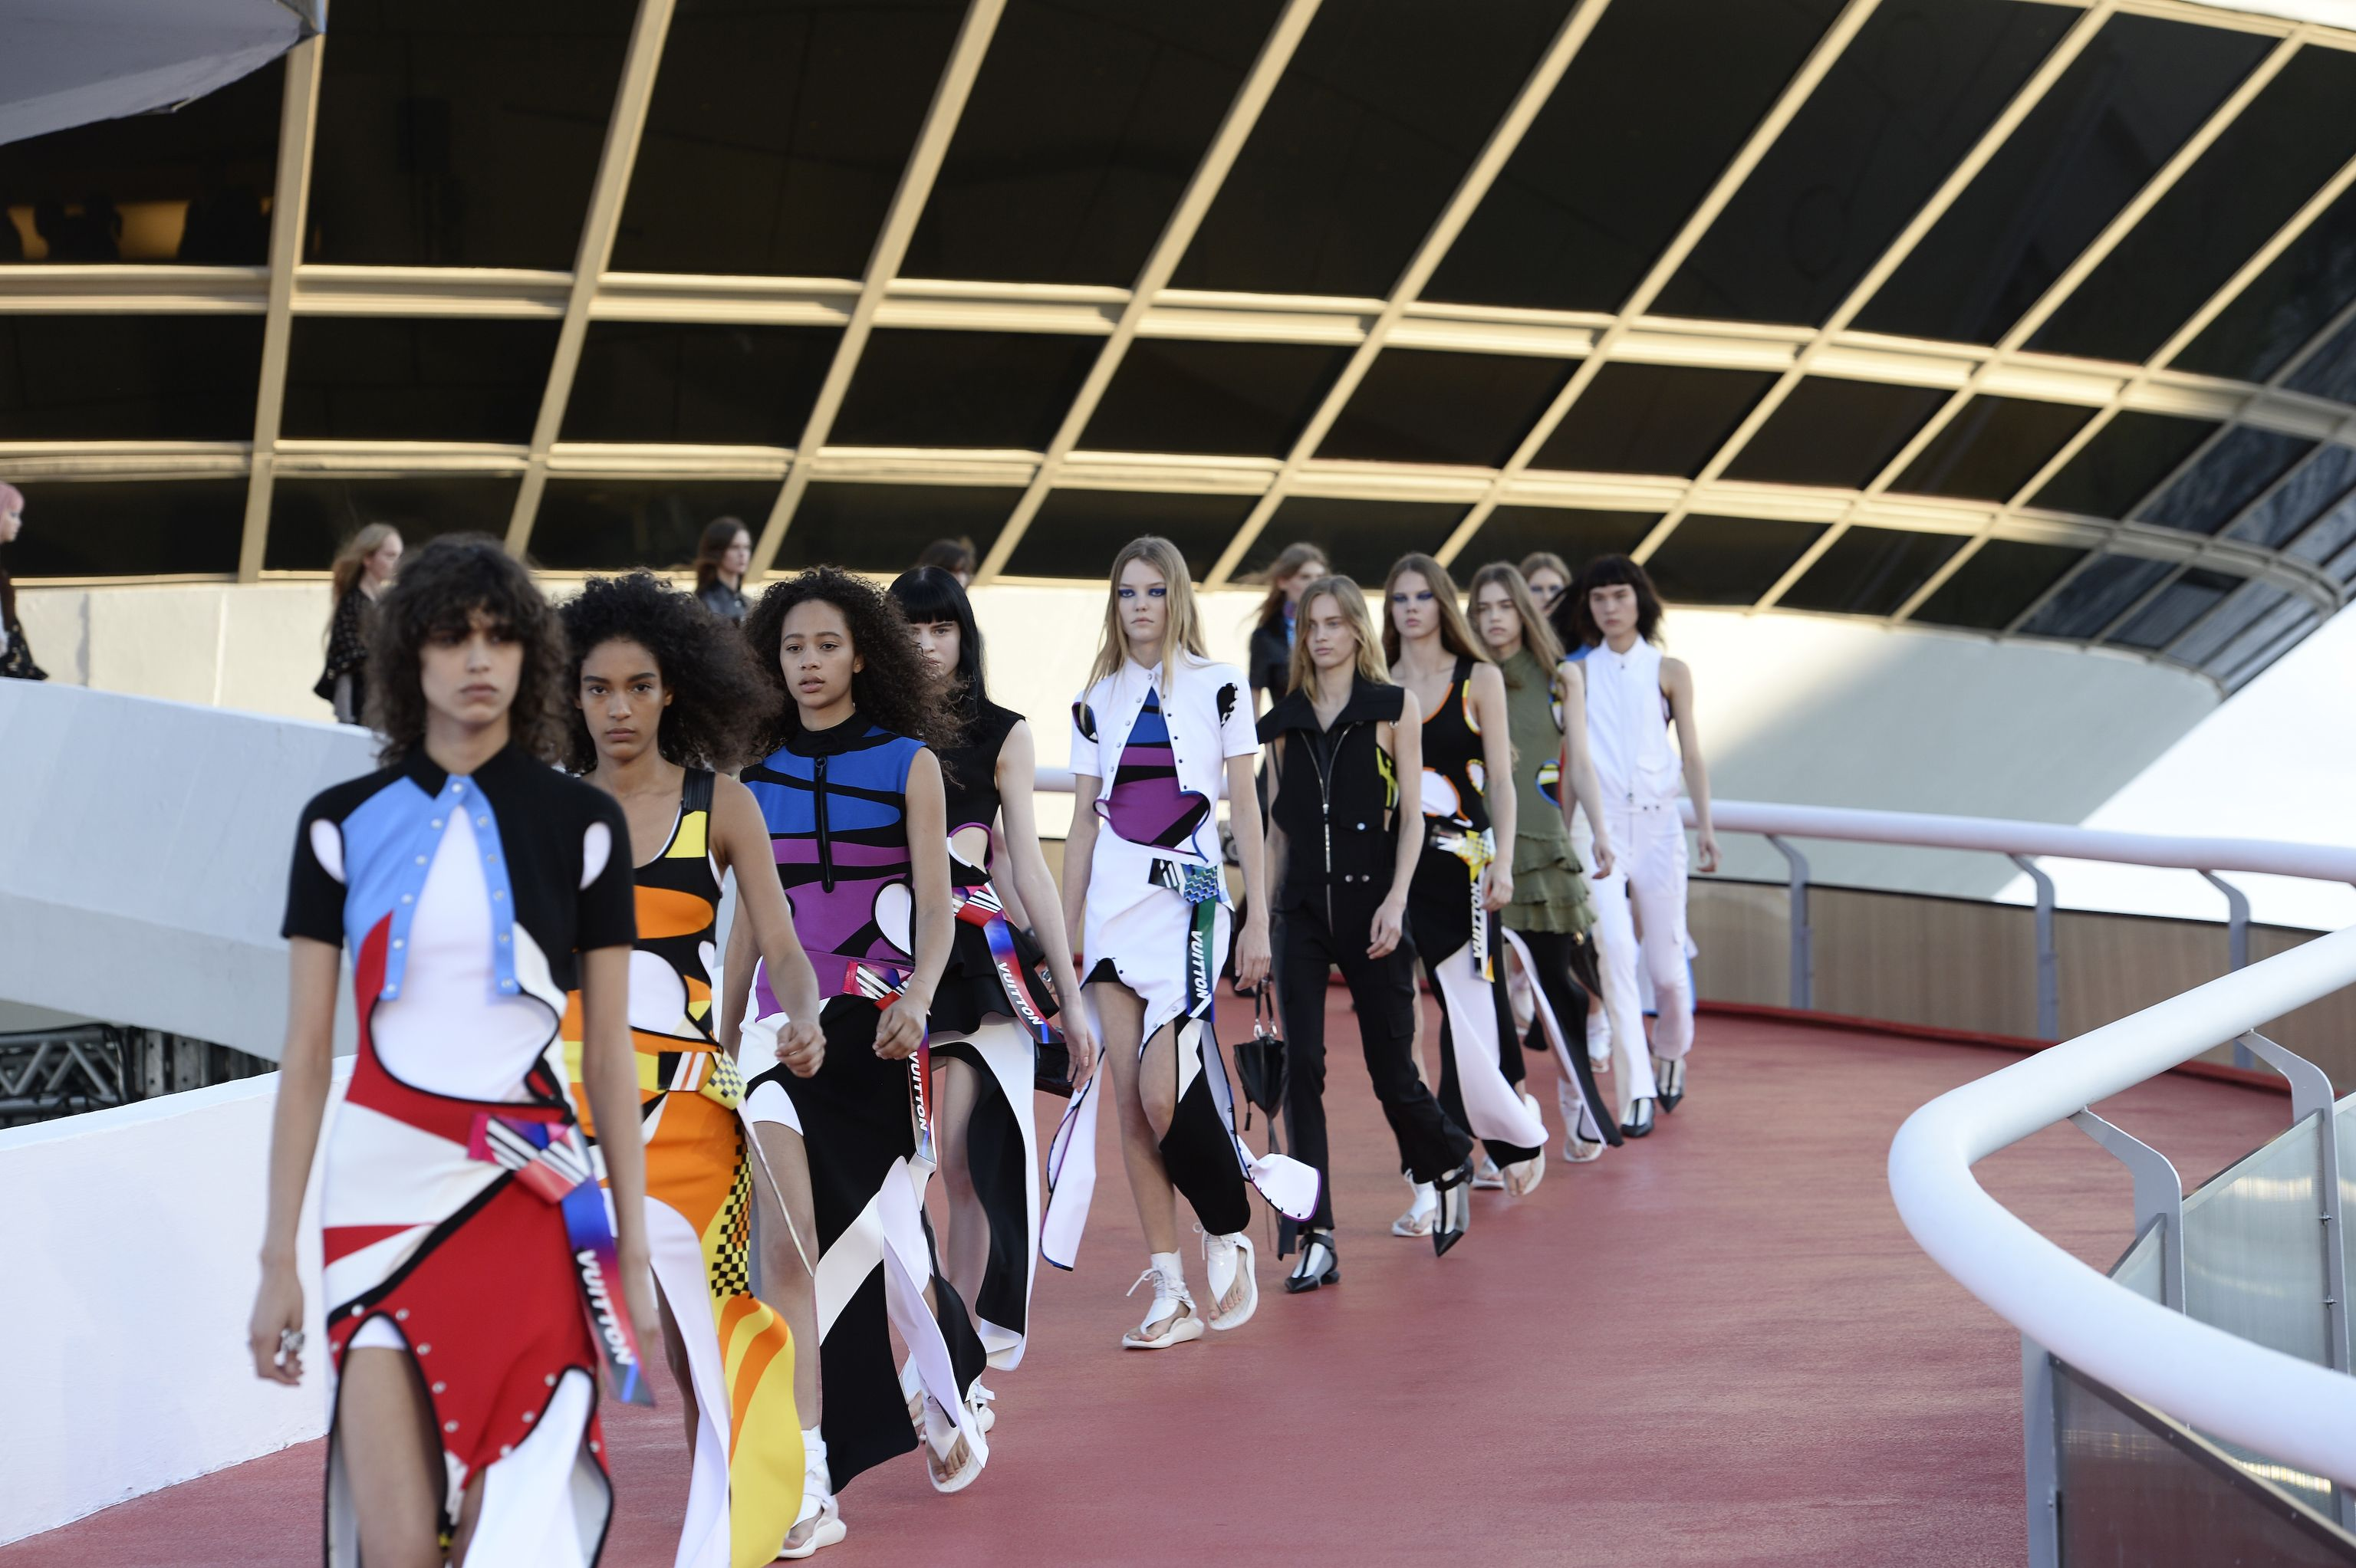 Louis Vuitton Is Bringing Its Next Cruise Show to New York